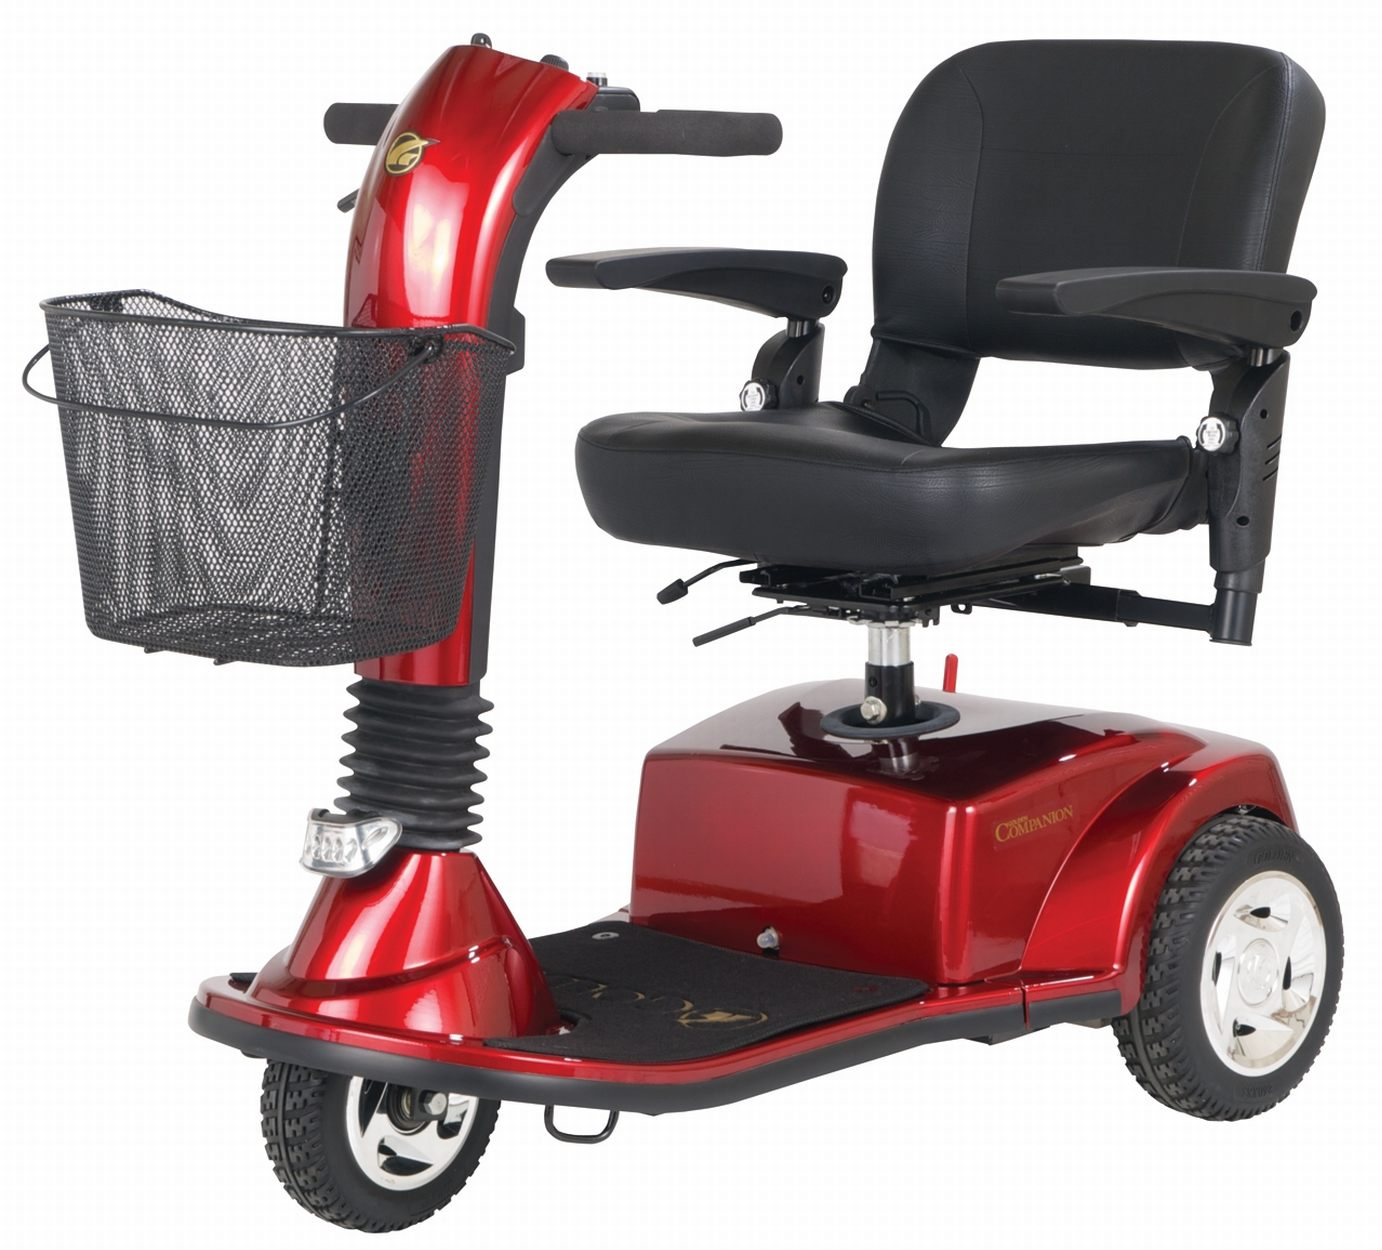 Golden Companion I Gc240 Parts All Mobility Scooter Sunl Adventure Wiring Diagram Brands And Power Chair Monster